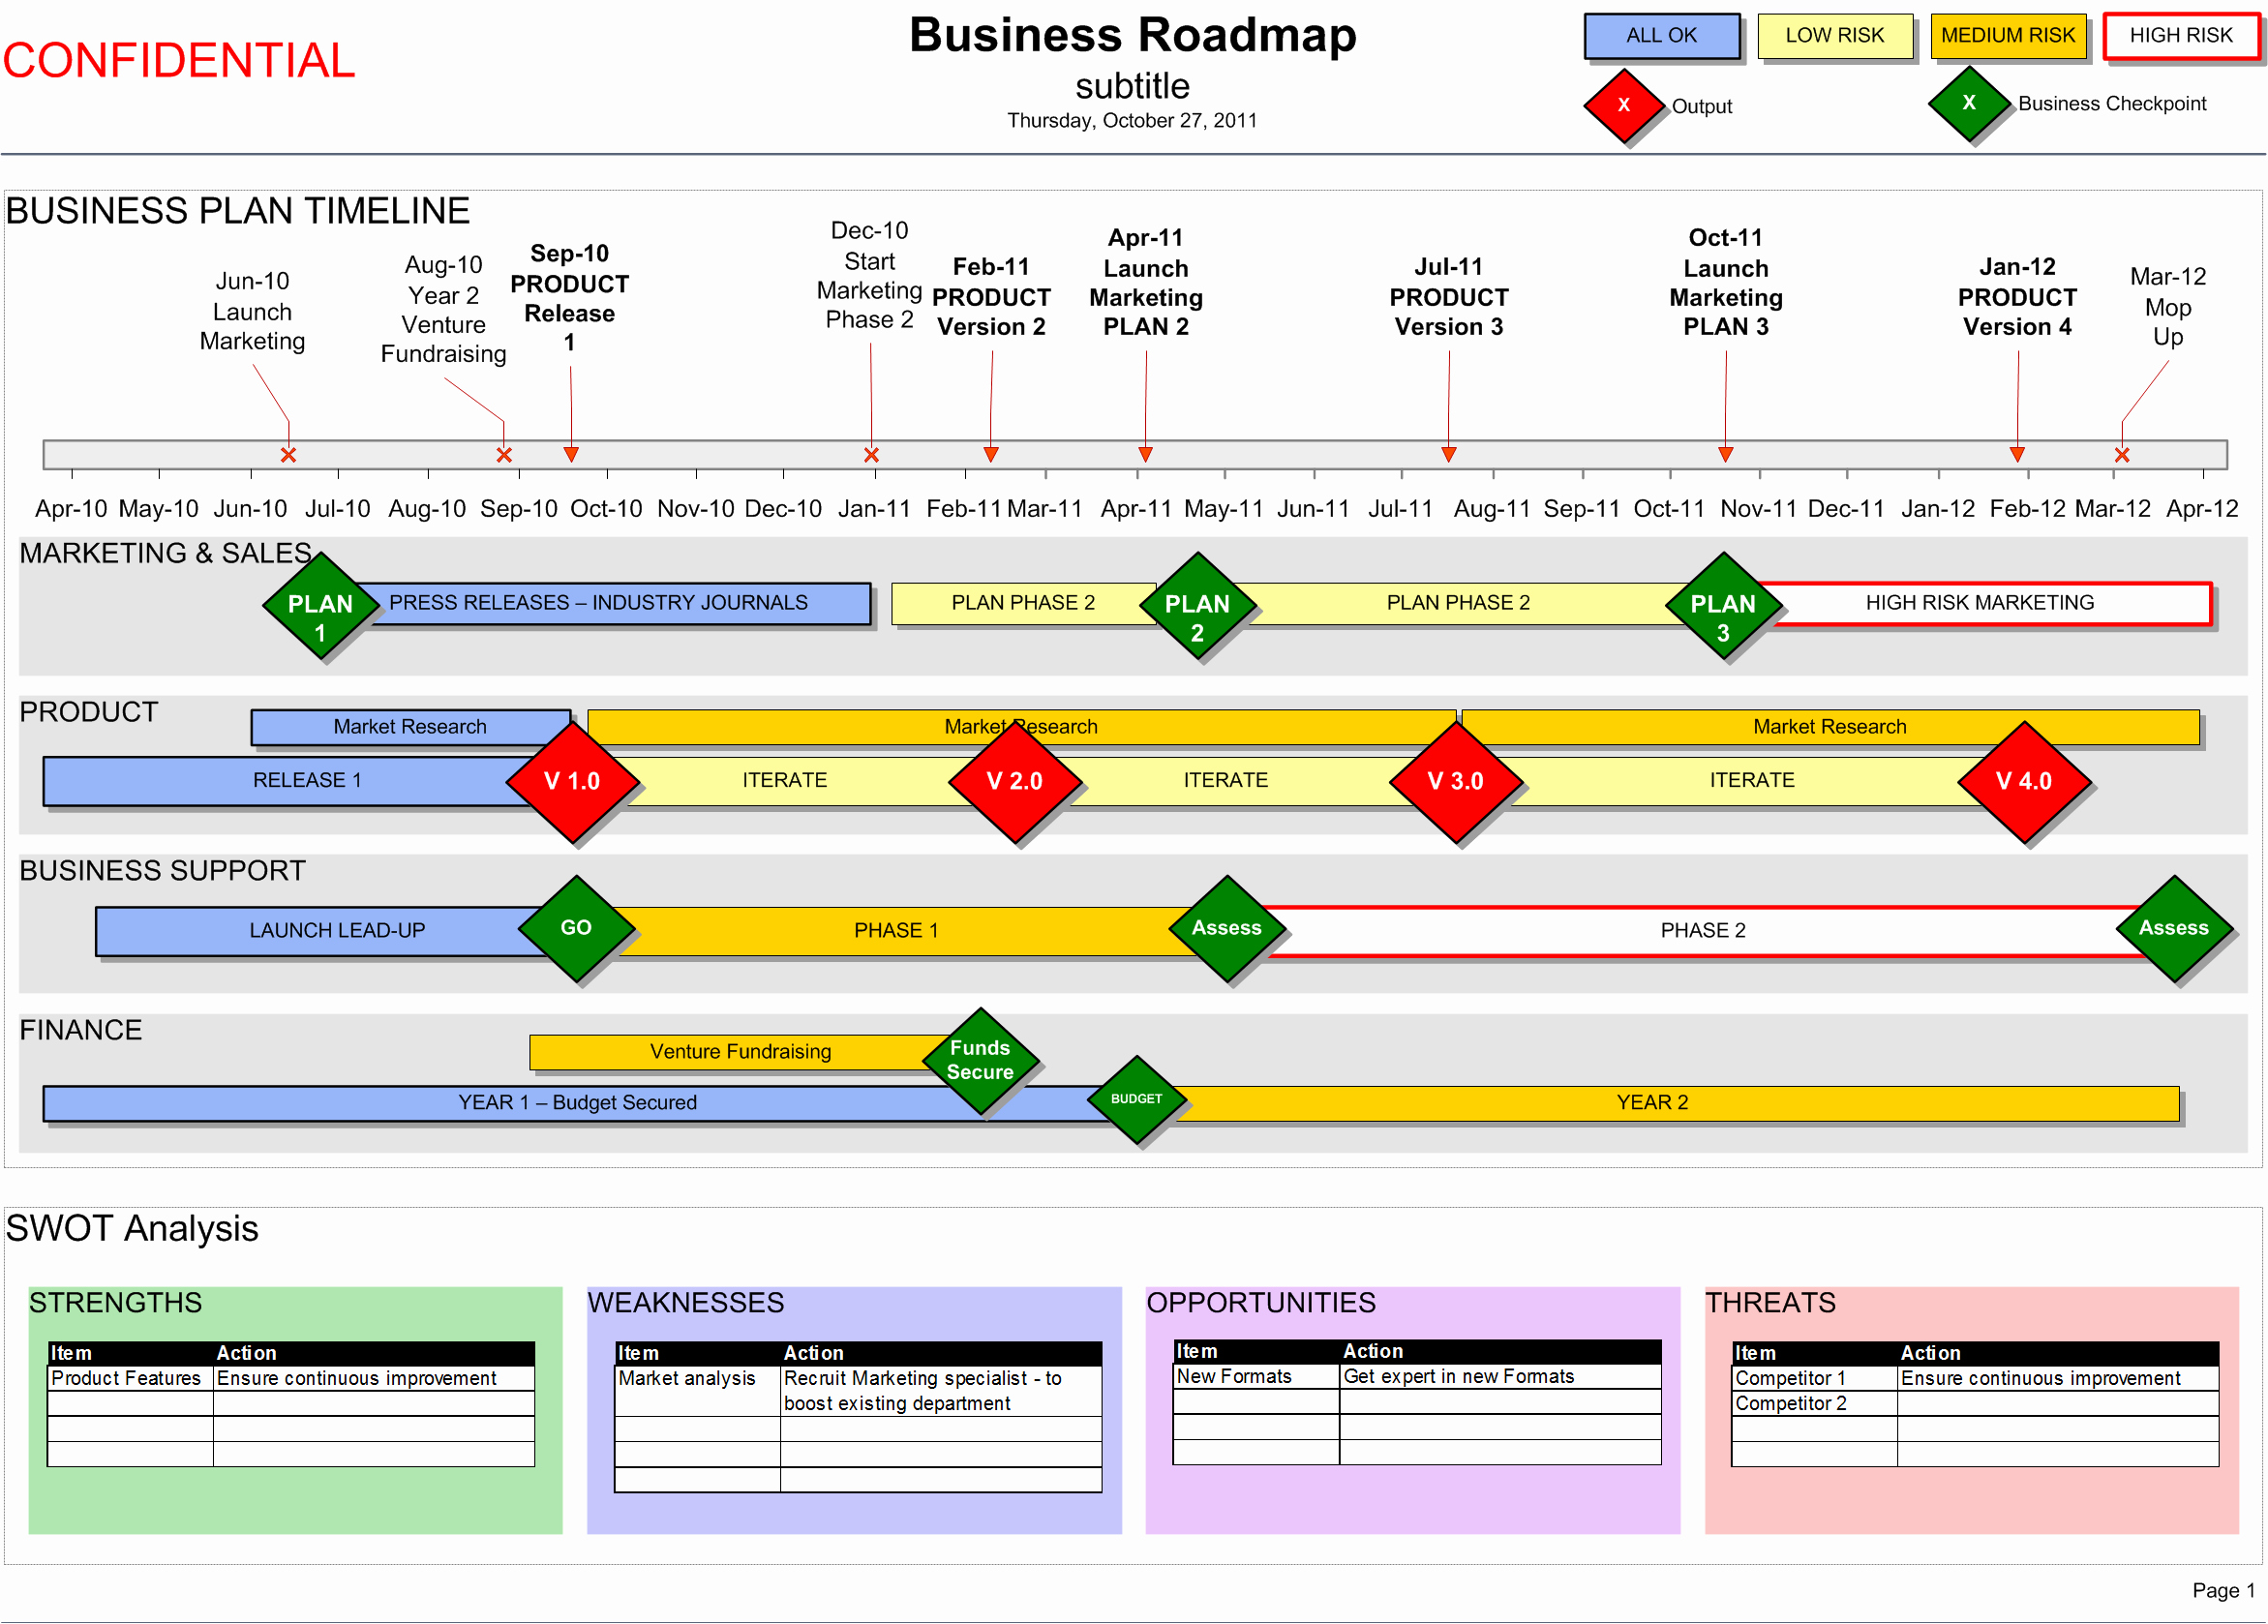 Strategic Plan Timeline Template Inspirational Business Roadmap with Swot & Timeline Visio Template